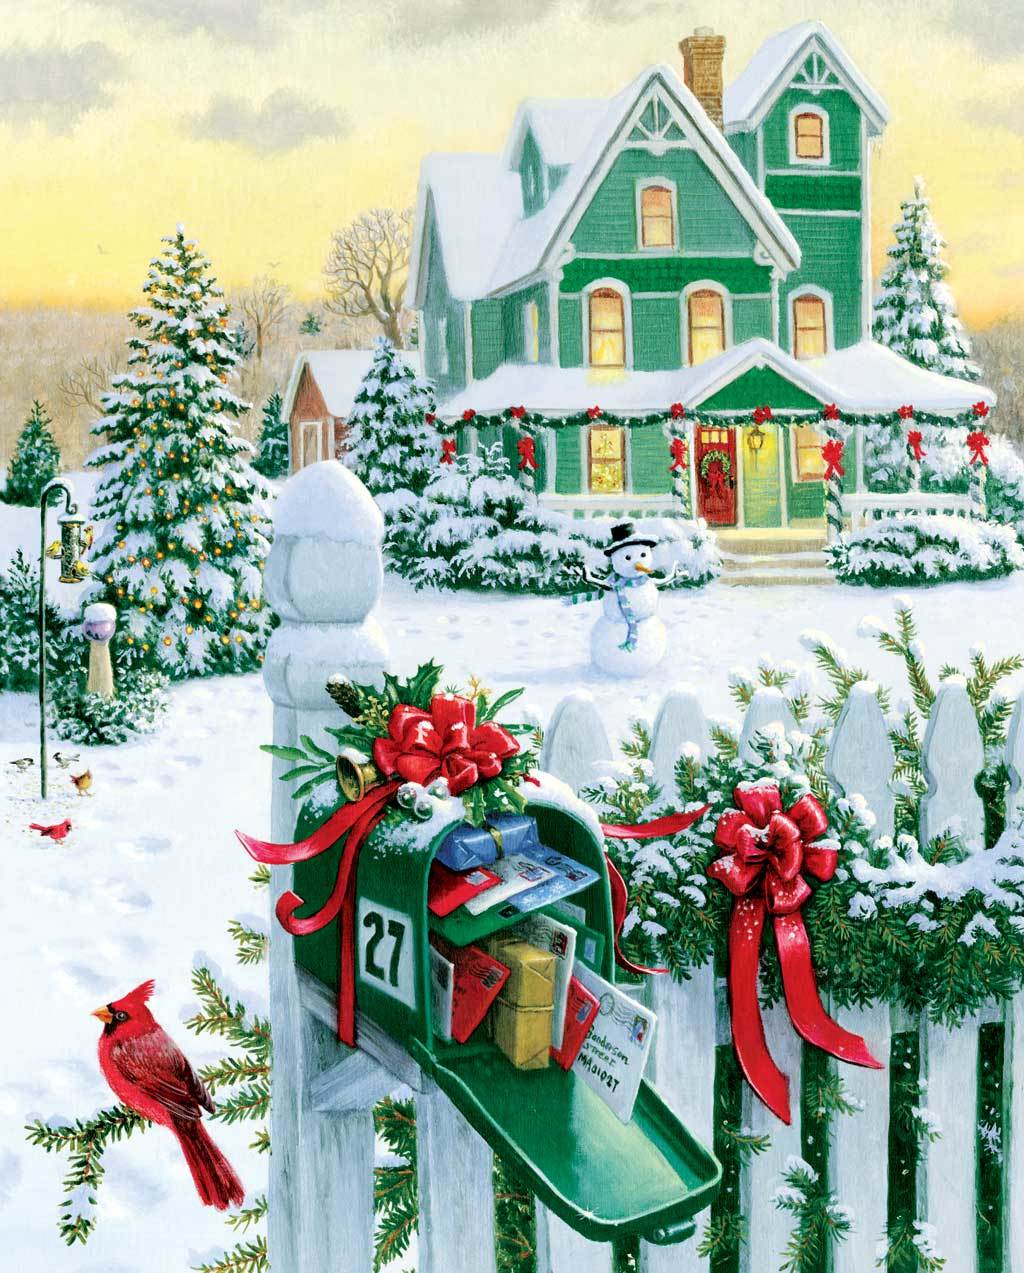 Holiday Mail - 1000pc Jigsaw Puzzle by Springbok (discon)